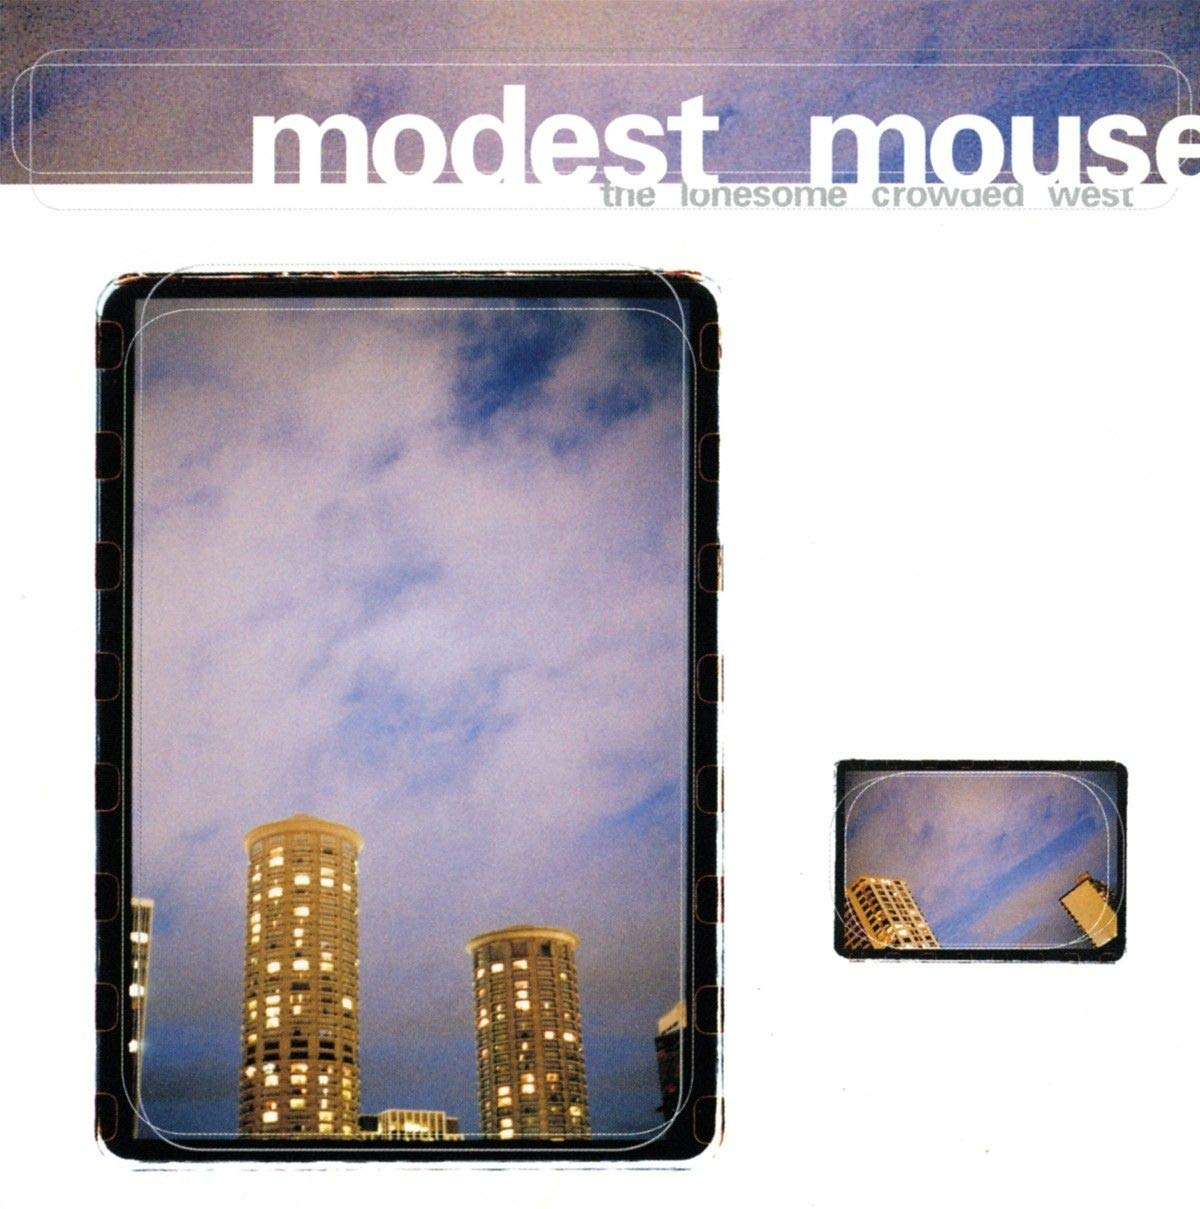 Modest Mouse - The Lonesome Crowded West - Amazon.com Music